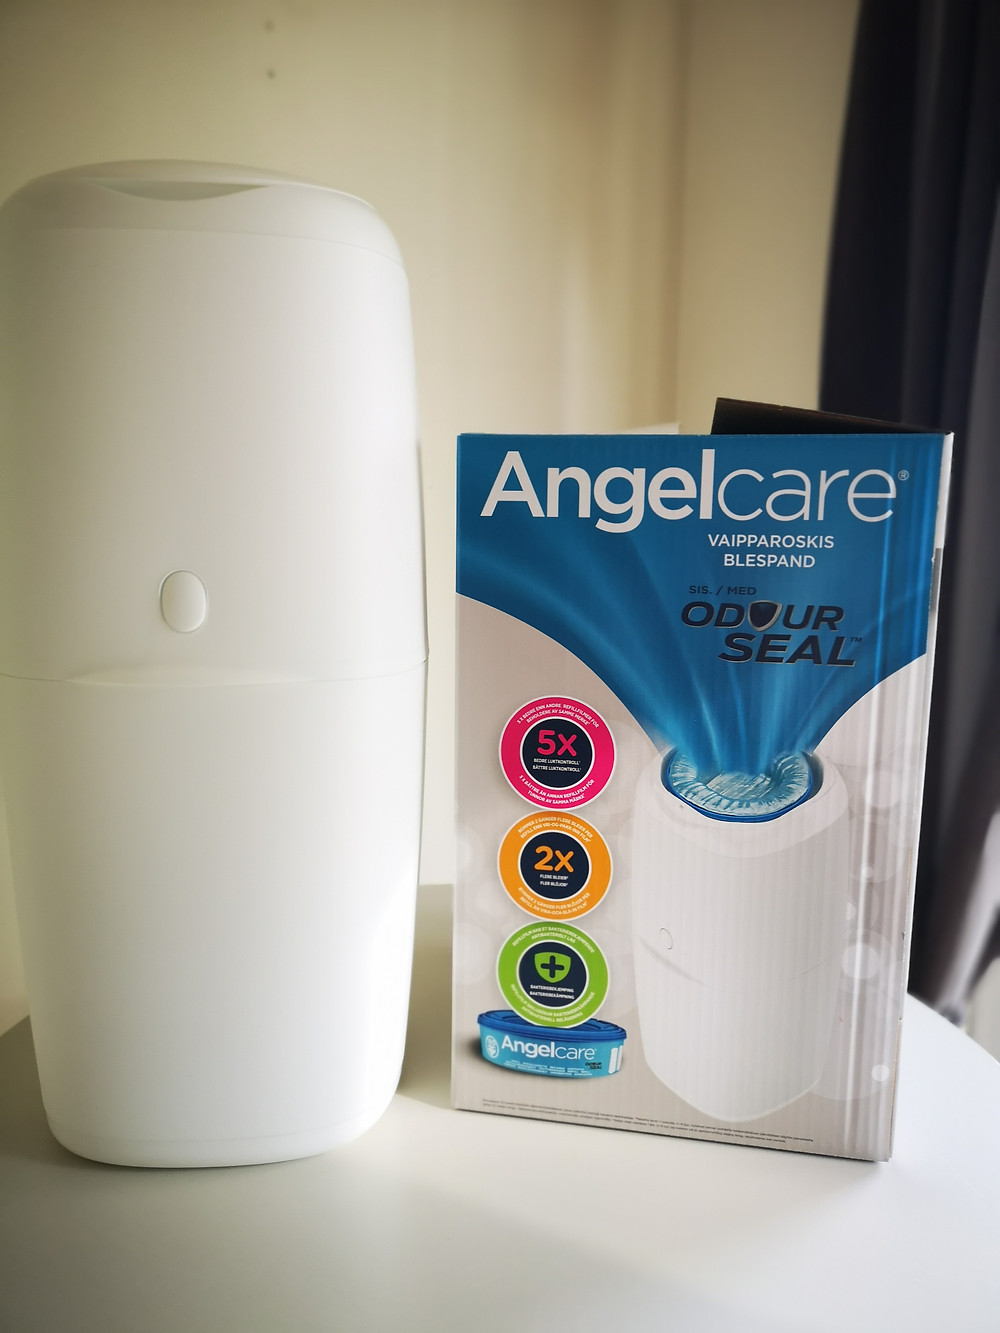 Free Angelcare Diaper Bin from Barne Hus, Norway